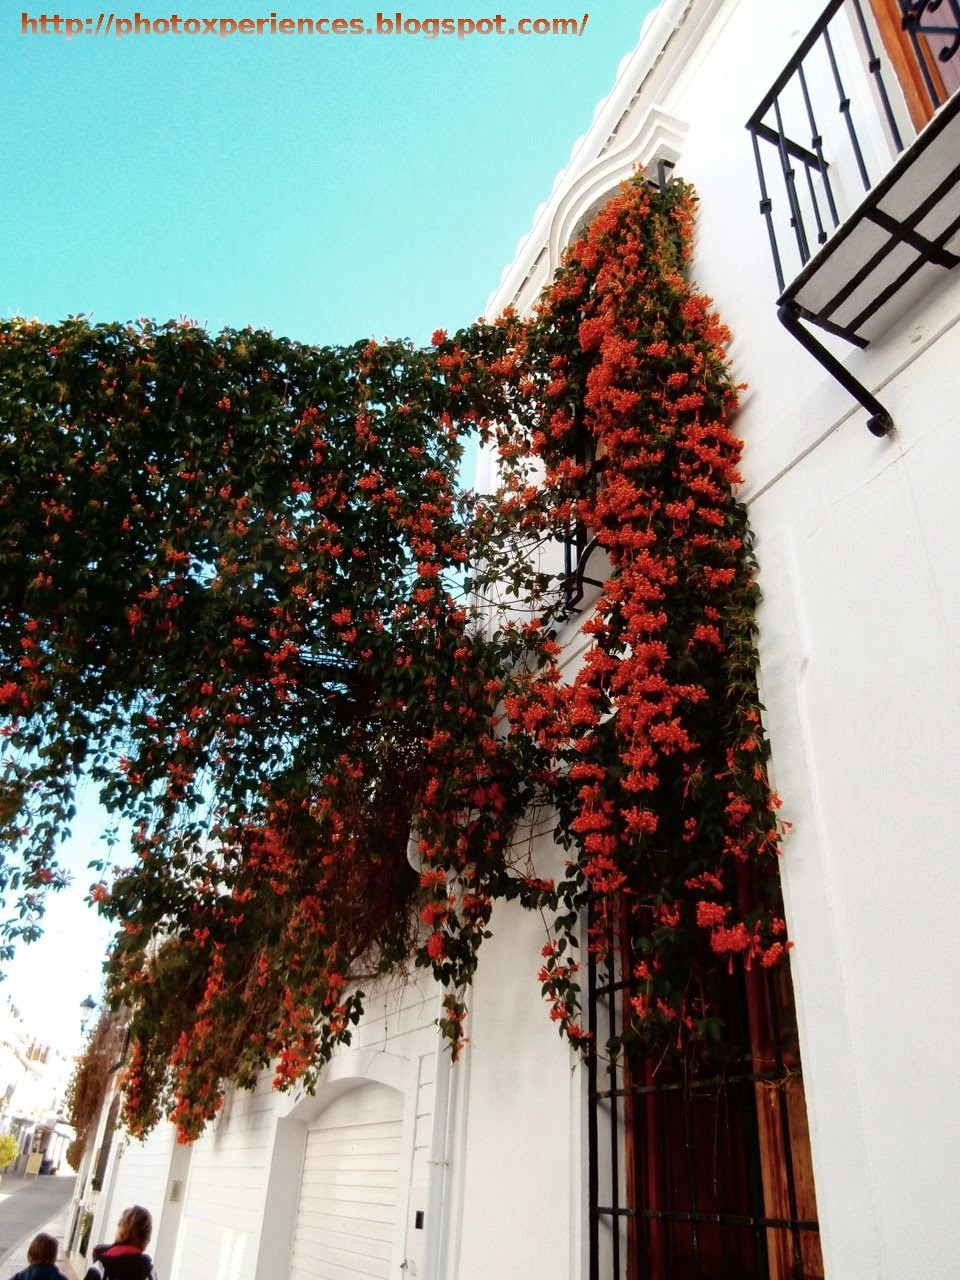 Typical street in Nerja. Calle típica de Nerja.